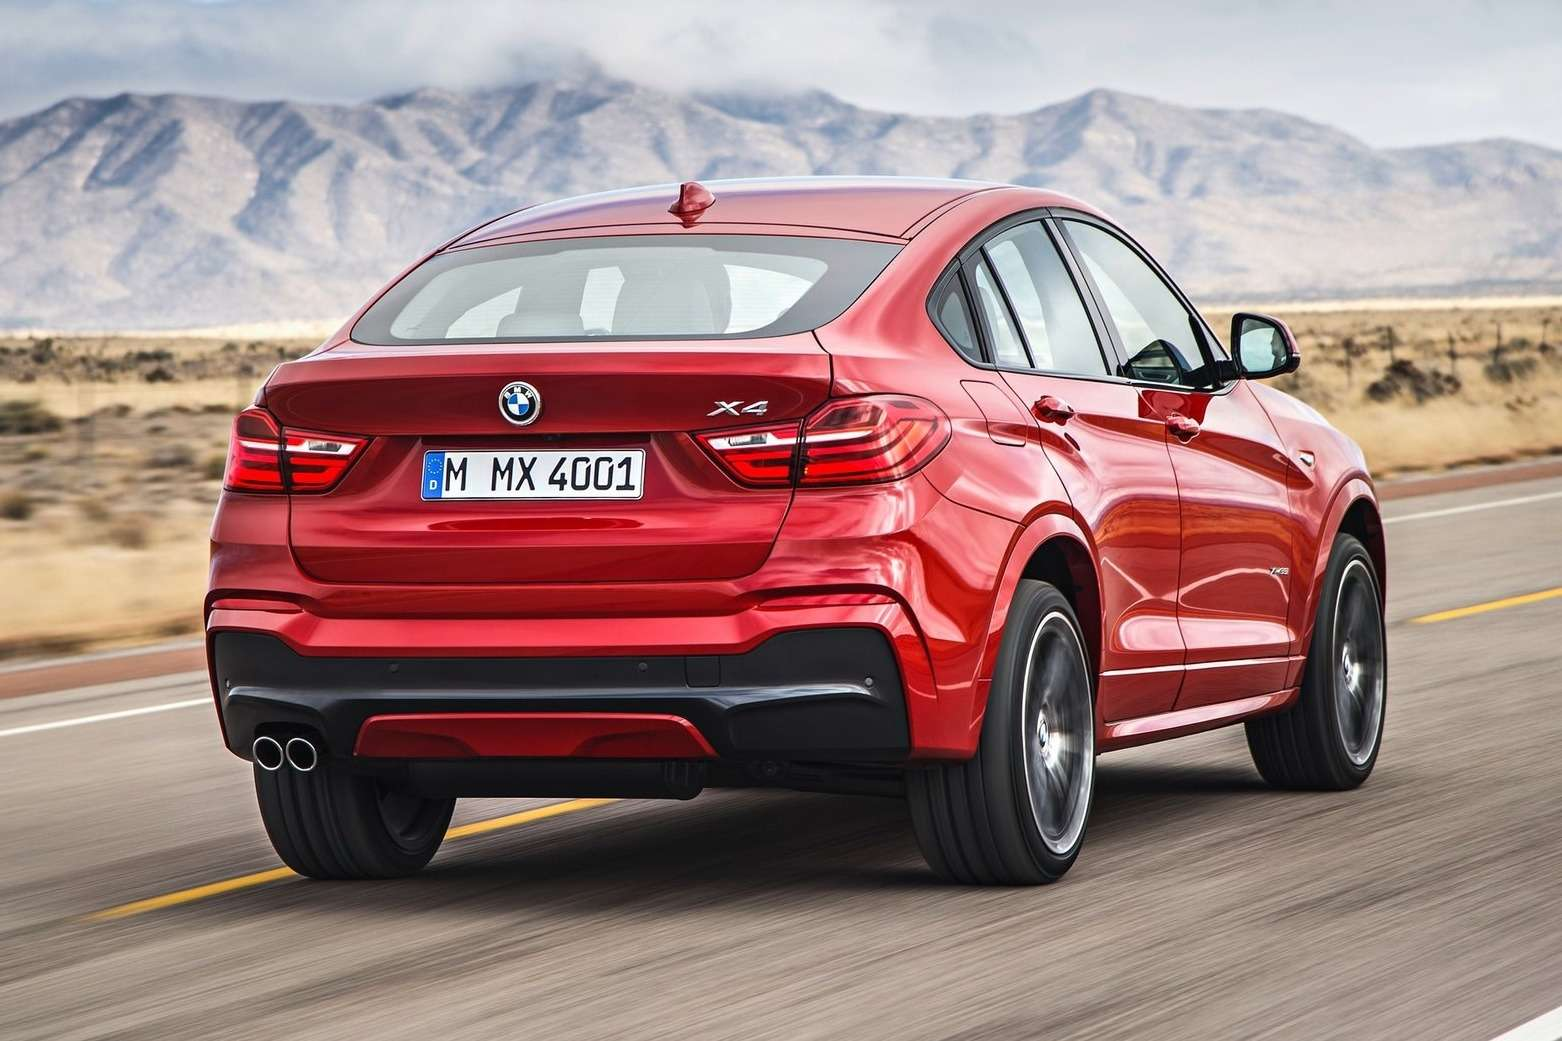 BMW-X4_2015_1600x1200_wallpaper_22